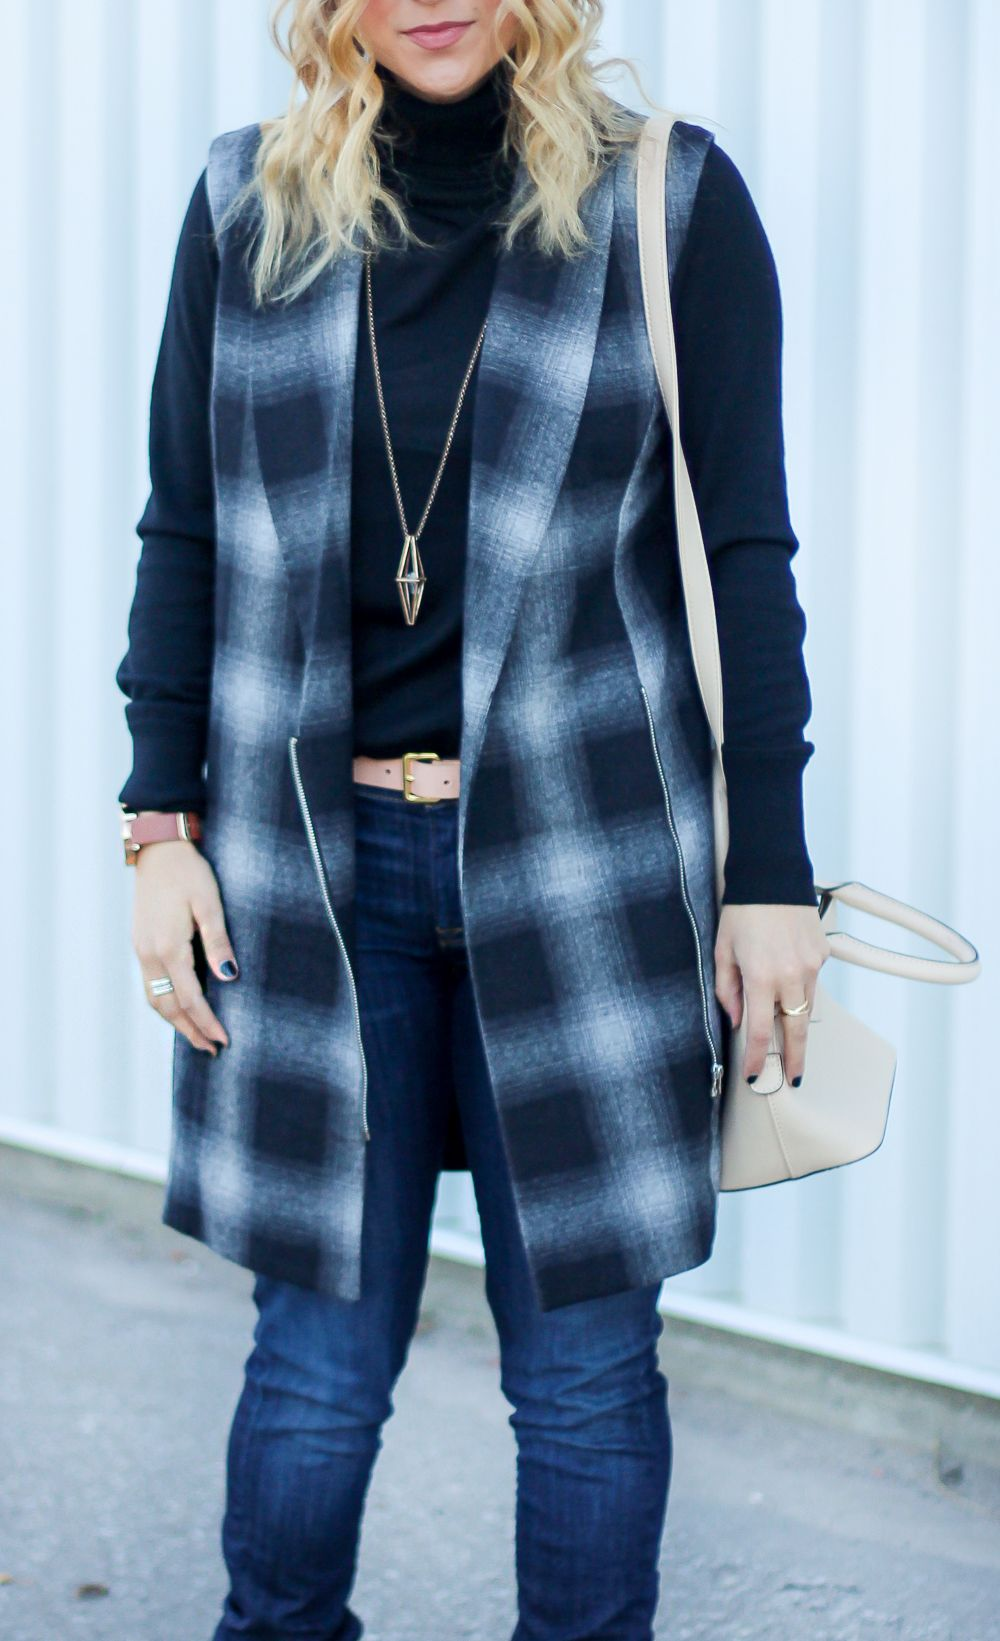 Turtleneck Sweaters Under 100 | Dark skinny jeans, Plaid vest and ...